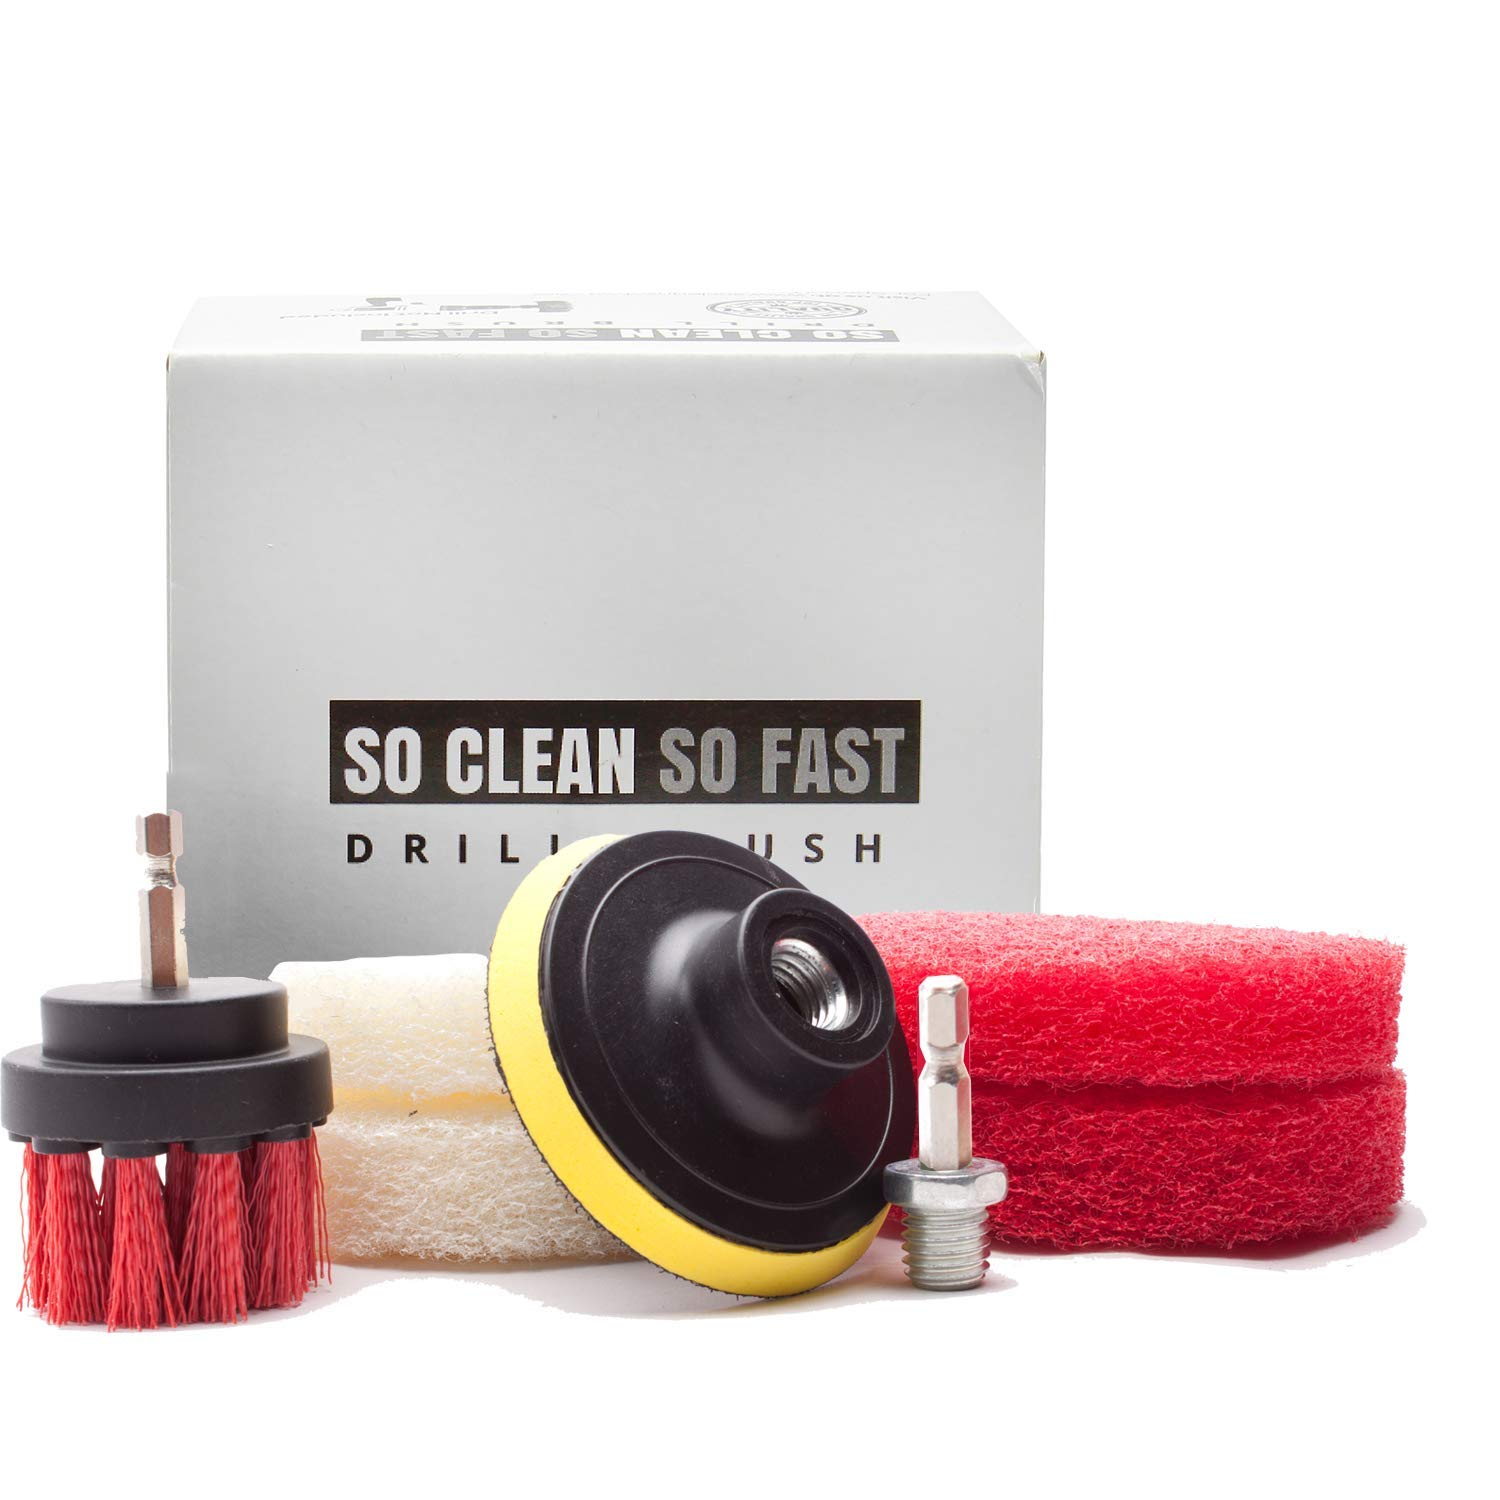 Ultimate Drill Scrub Kit - Clean 5X Faster - Remove Hard Water Stain, Soap Scum on Grout, Corner, Tile, Fiberglass Tub, Vinyl Floor, Glass Door - Bathroom Cleaning Accessory - Drill Brush and Pads Set